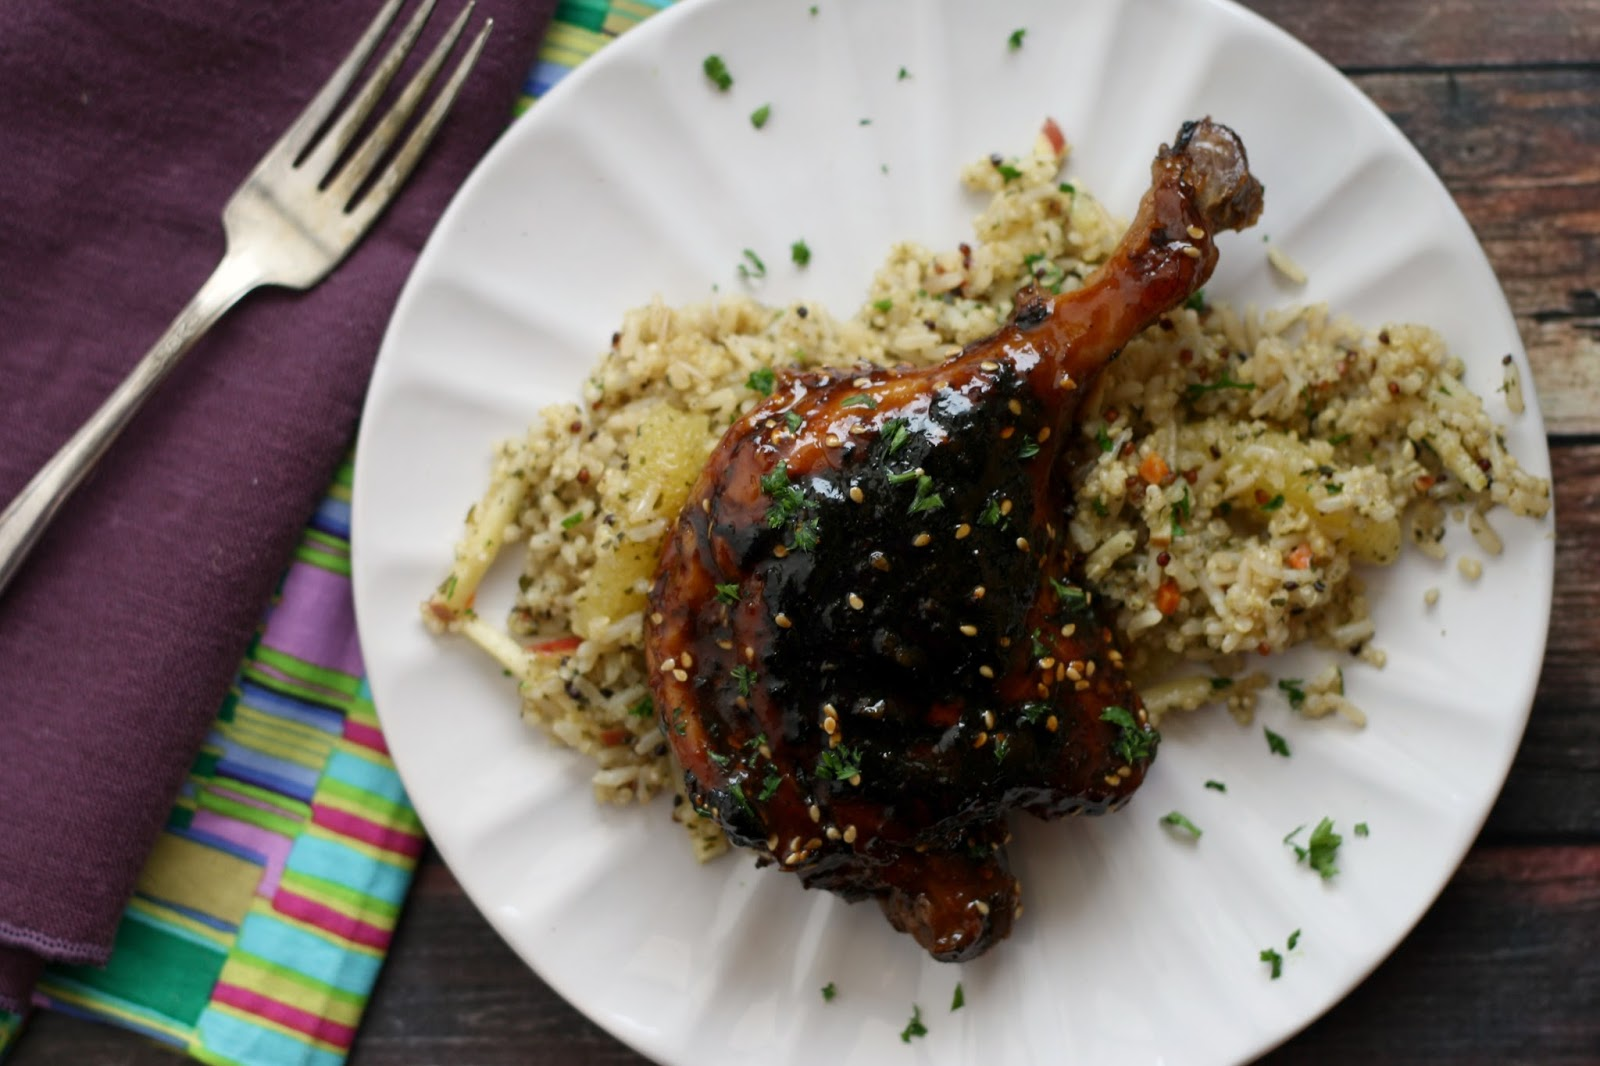 Asian-inspired Braised Duck Legs #perfectiontakestime #duck